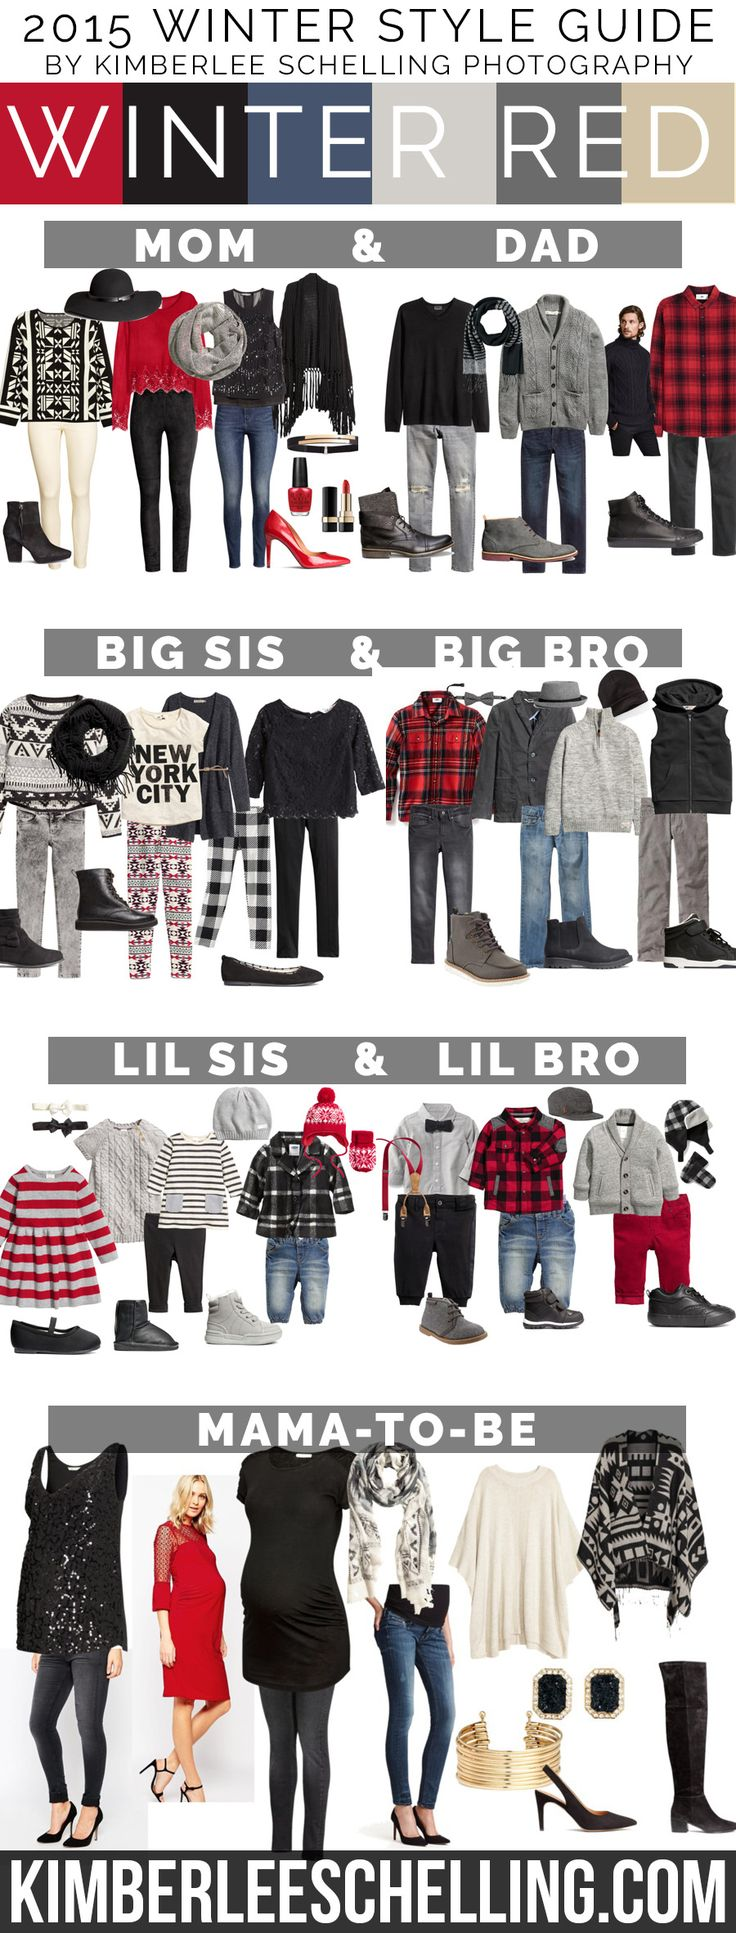 Family portrait outfits for 2015! What to wear for your family photos, including mom, dad, big sis & bro, little sis & bro, and also some maternity style outfit ideas! By Kimberlee Schelling Photography (Red, black, white, grey and cream color palete)